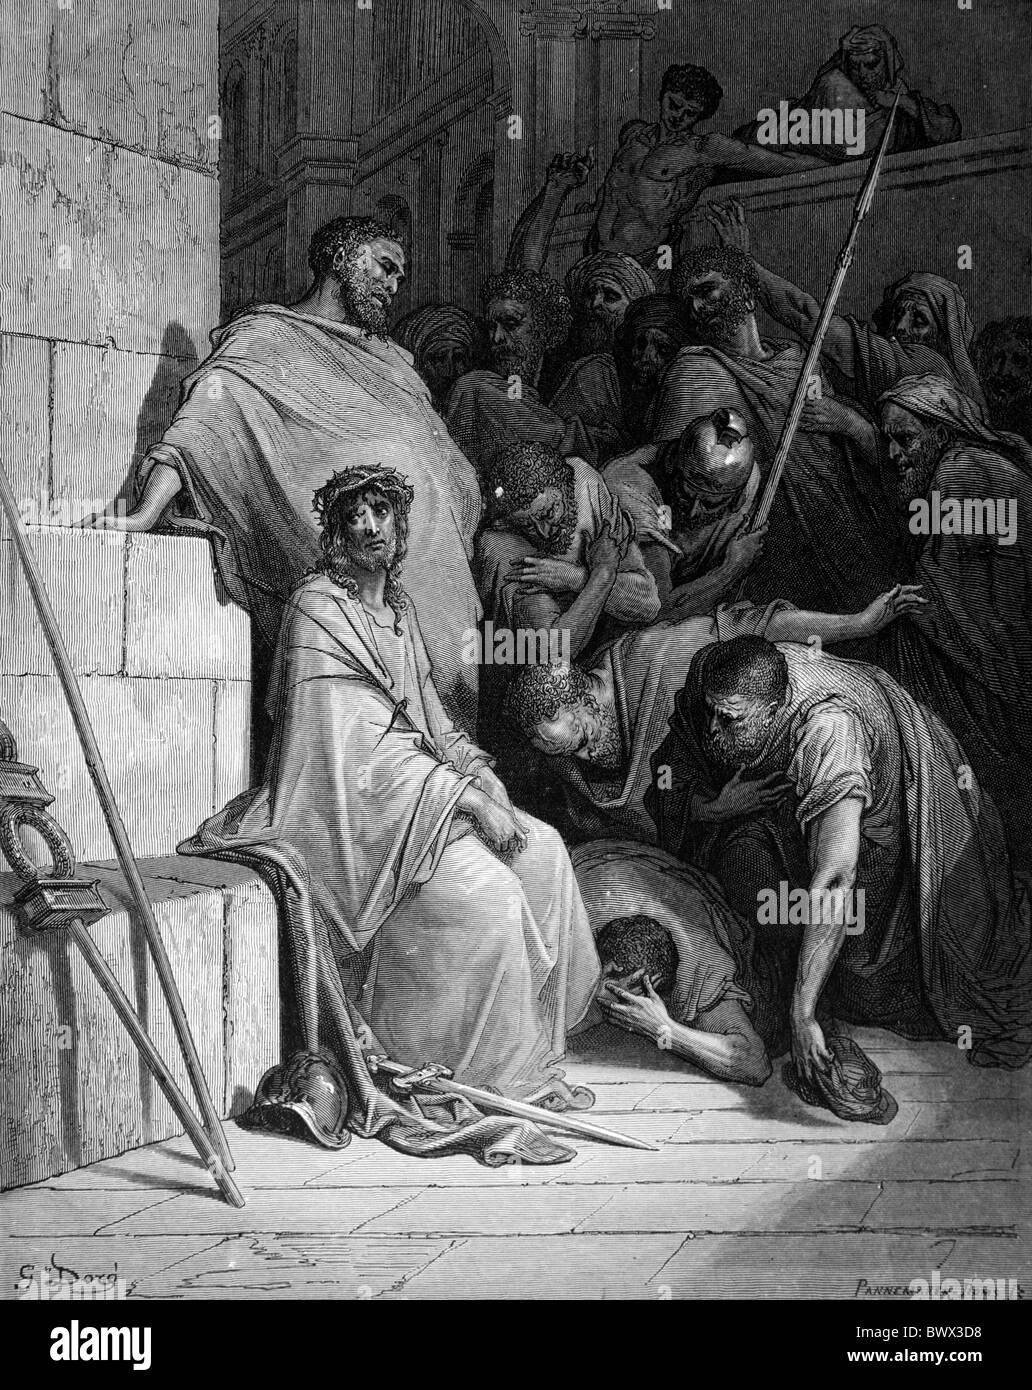 Gustave Doré; The Passion; Christ Mocked; Black and White Engraving - Stock Image